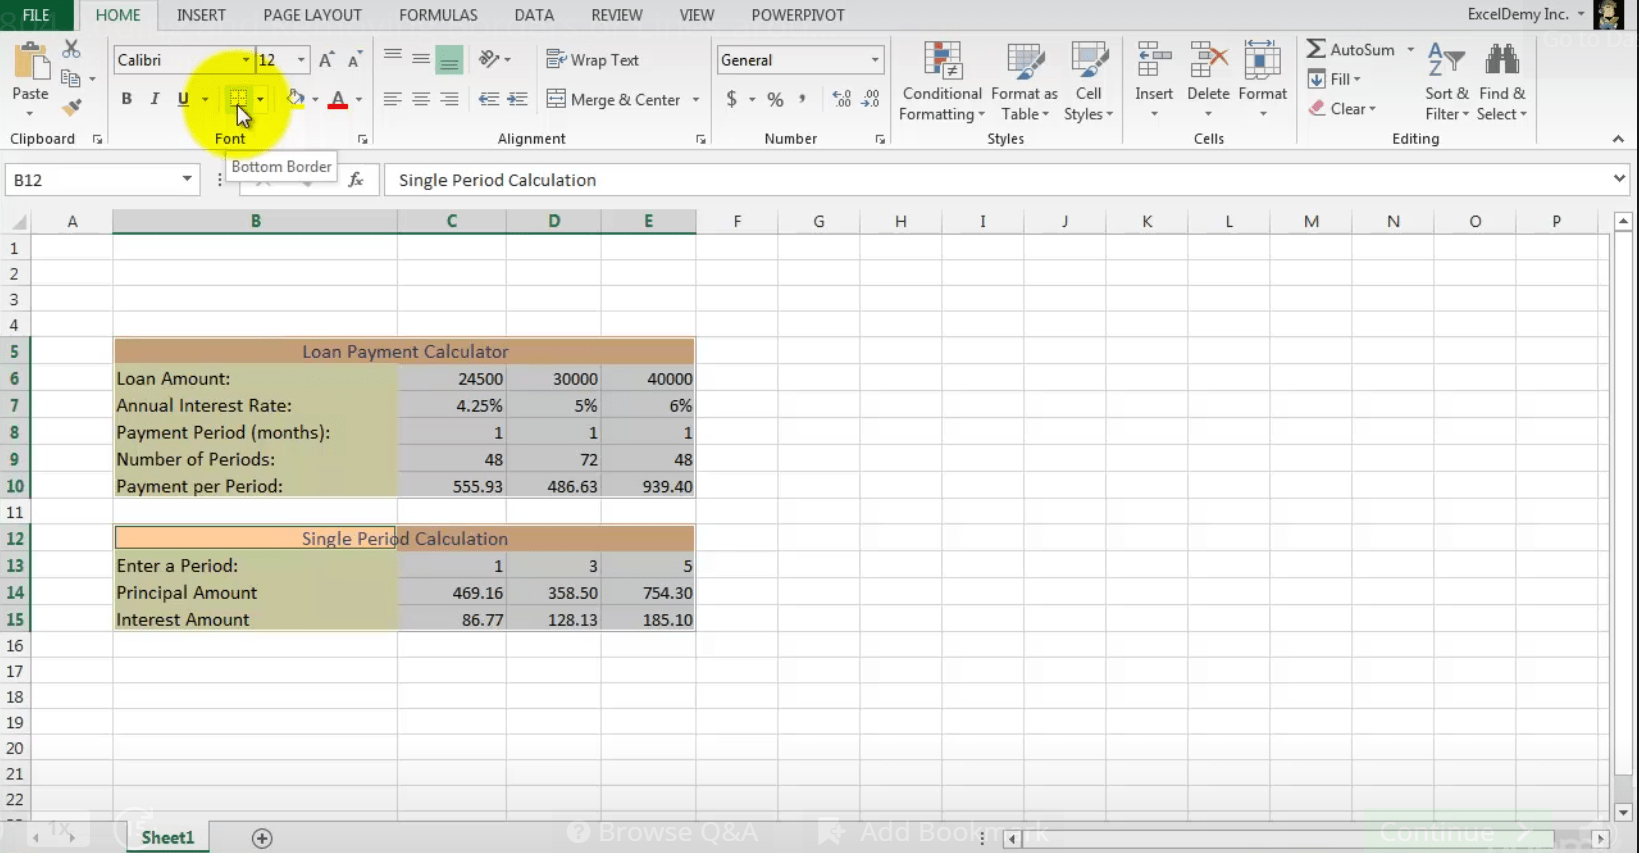 How To Add Or Remove Cell Borders In Excel